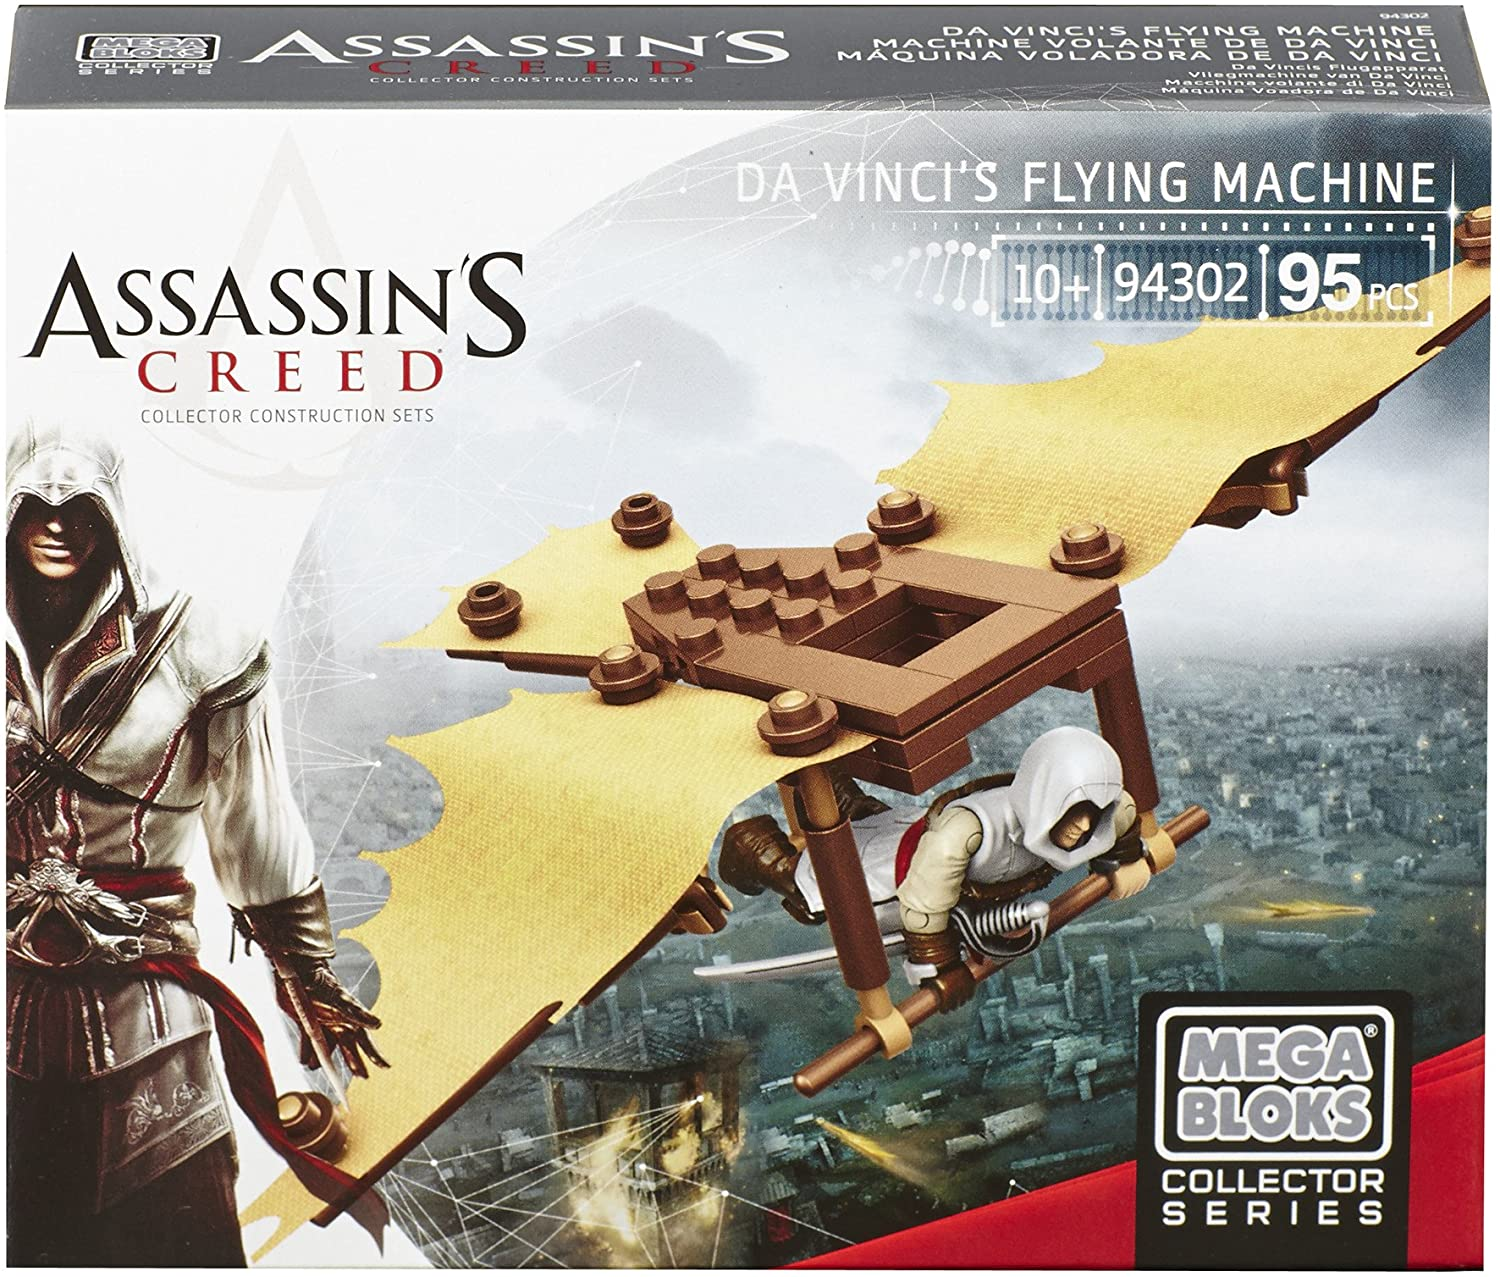 10 bellissimi gadget per i fan di Assassin's Creed